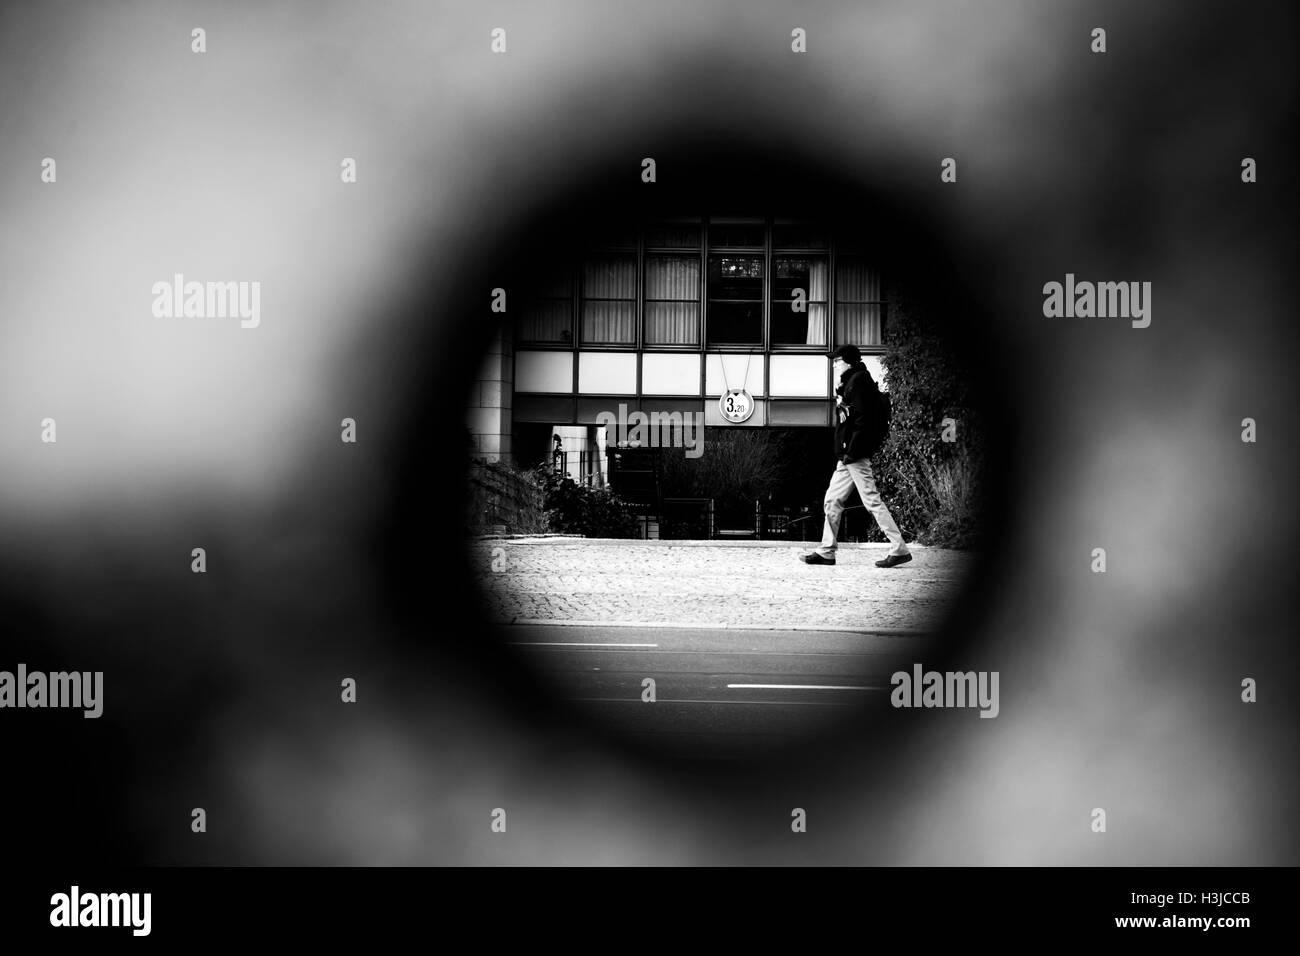 A view through a hole of the remaining Berlin Wall in Bernauer Strasse in the city. - Stock Image